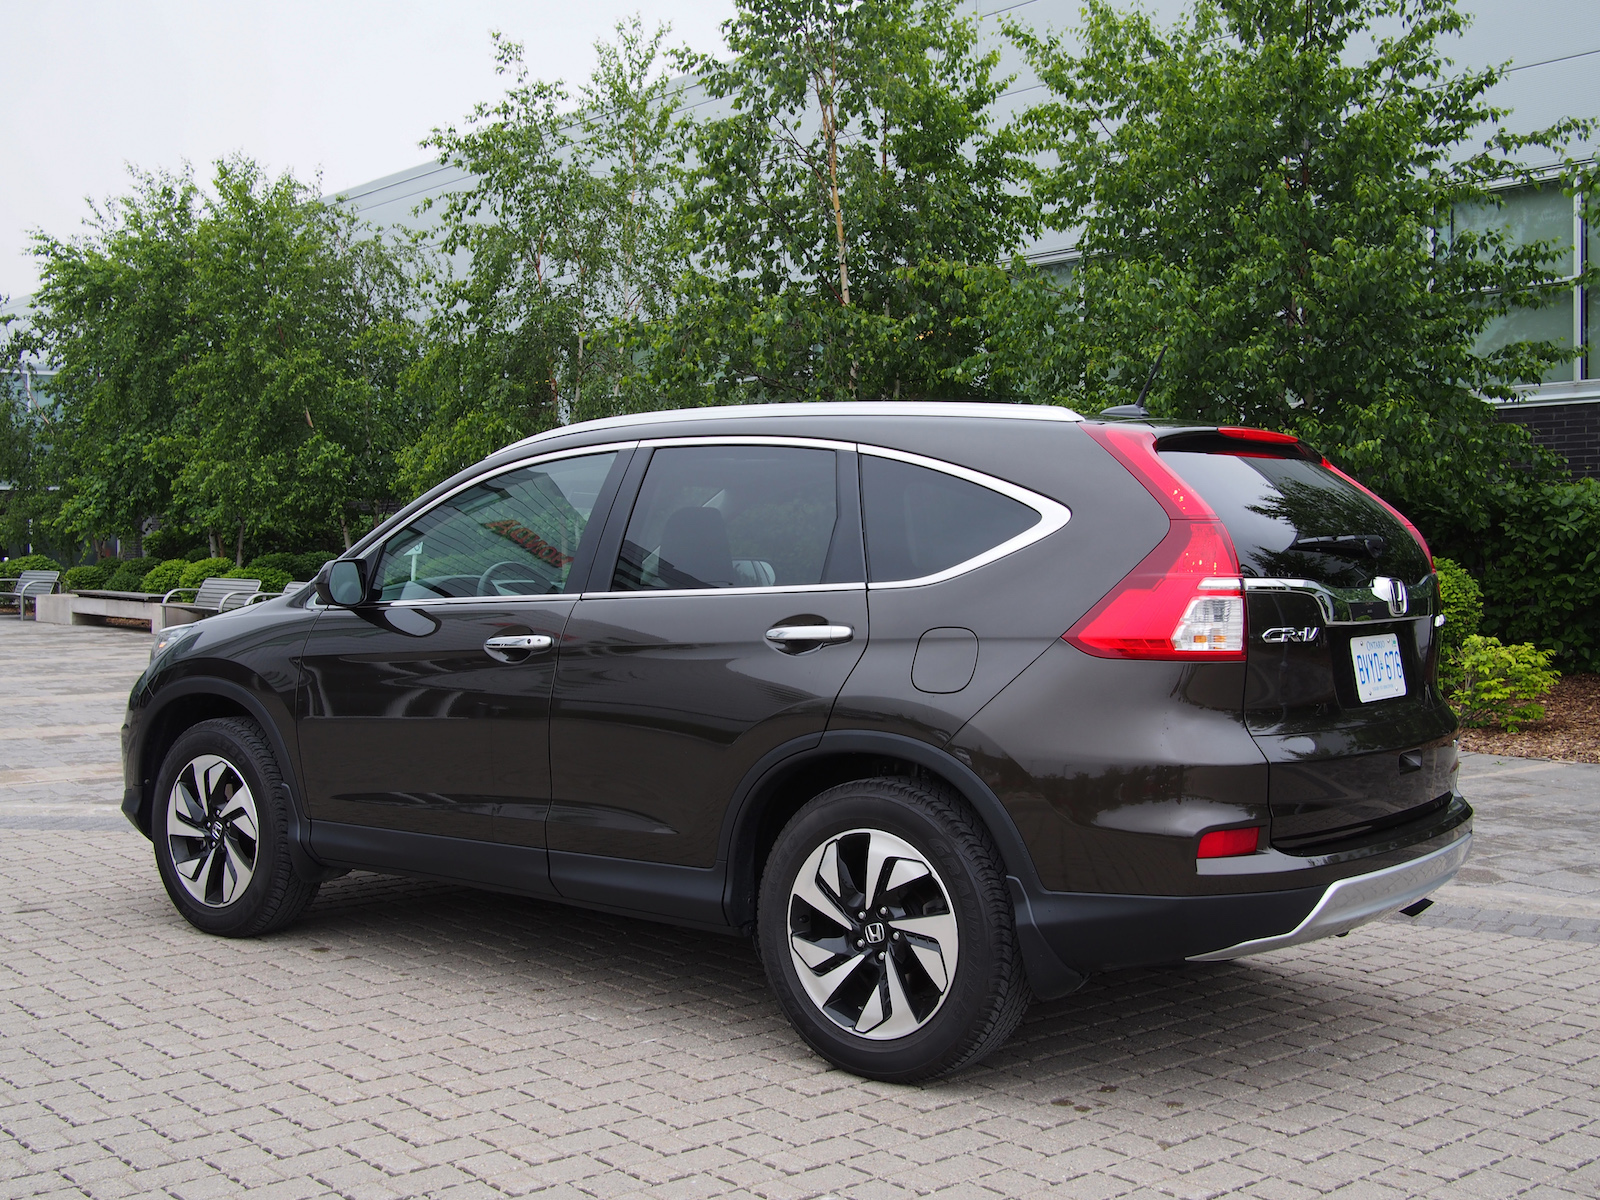 2015 honda crv specifications weight 2017 2018 best cars reviews. Black Bedroom Furniture Sets. Home Design Ideas